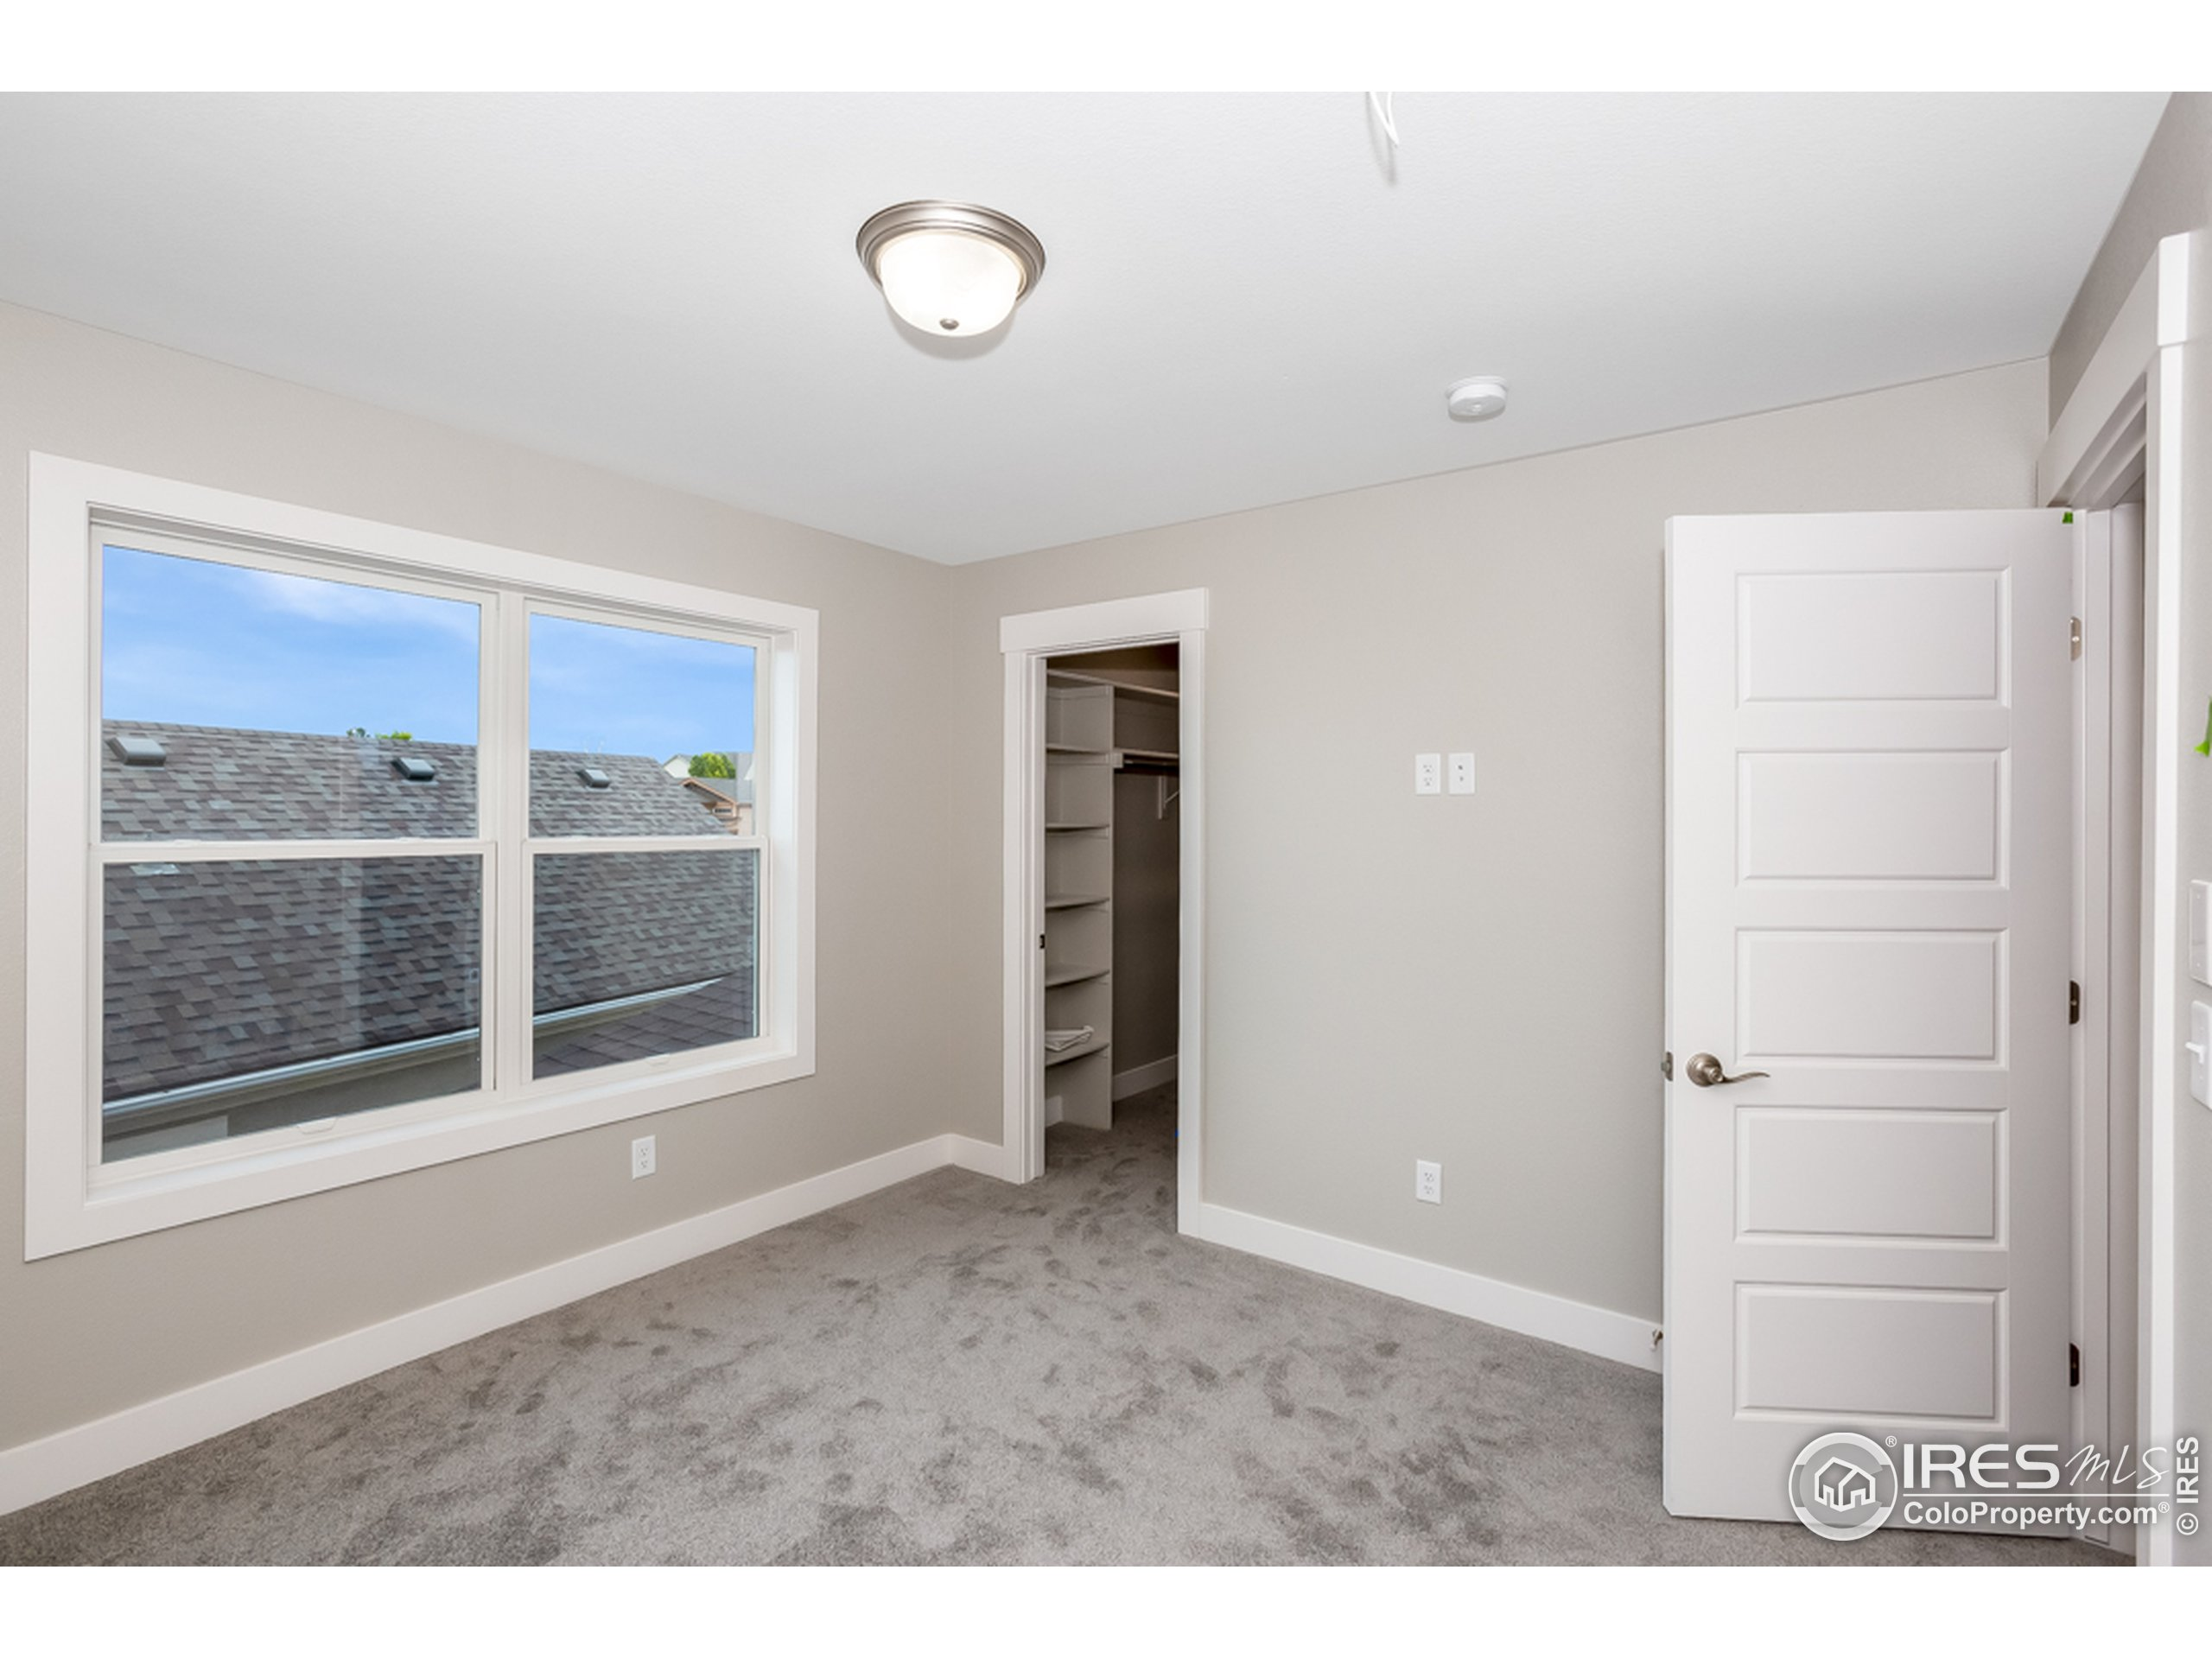 All bedrooms have walk-in closets